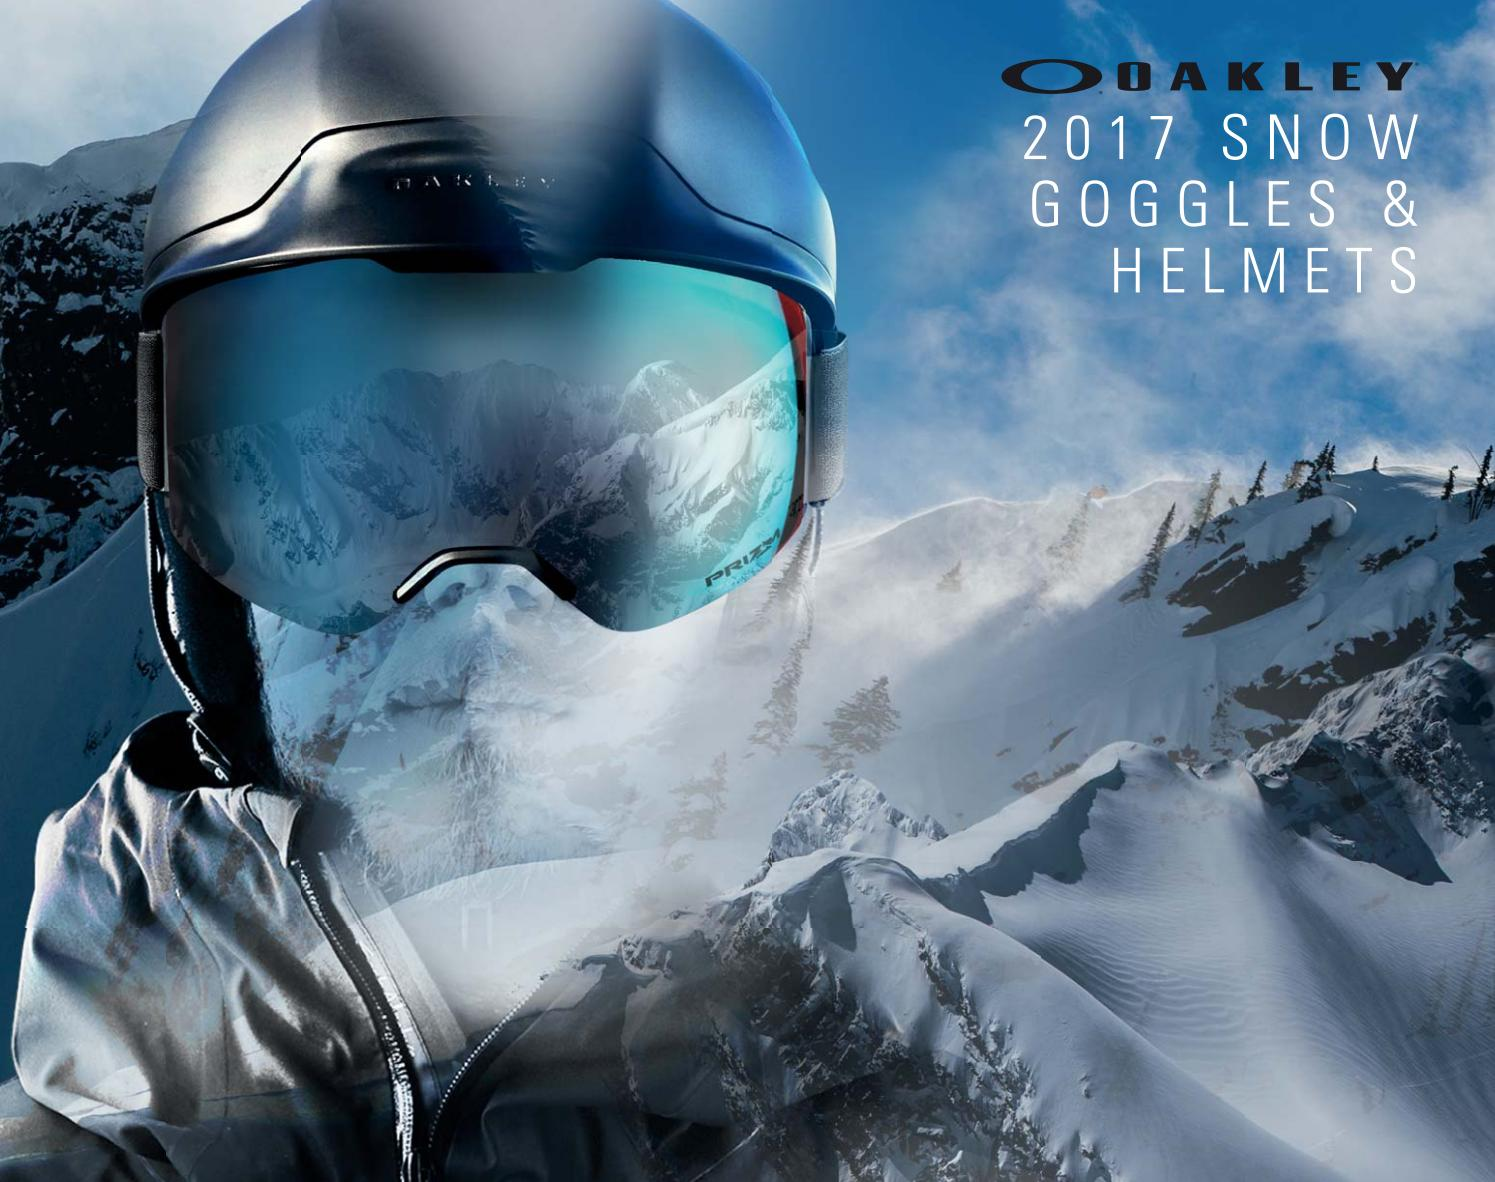 a4c0f9bb86 OAKLEY 1718 by zuzupopo.snow - issuu